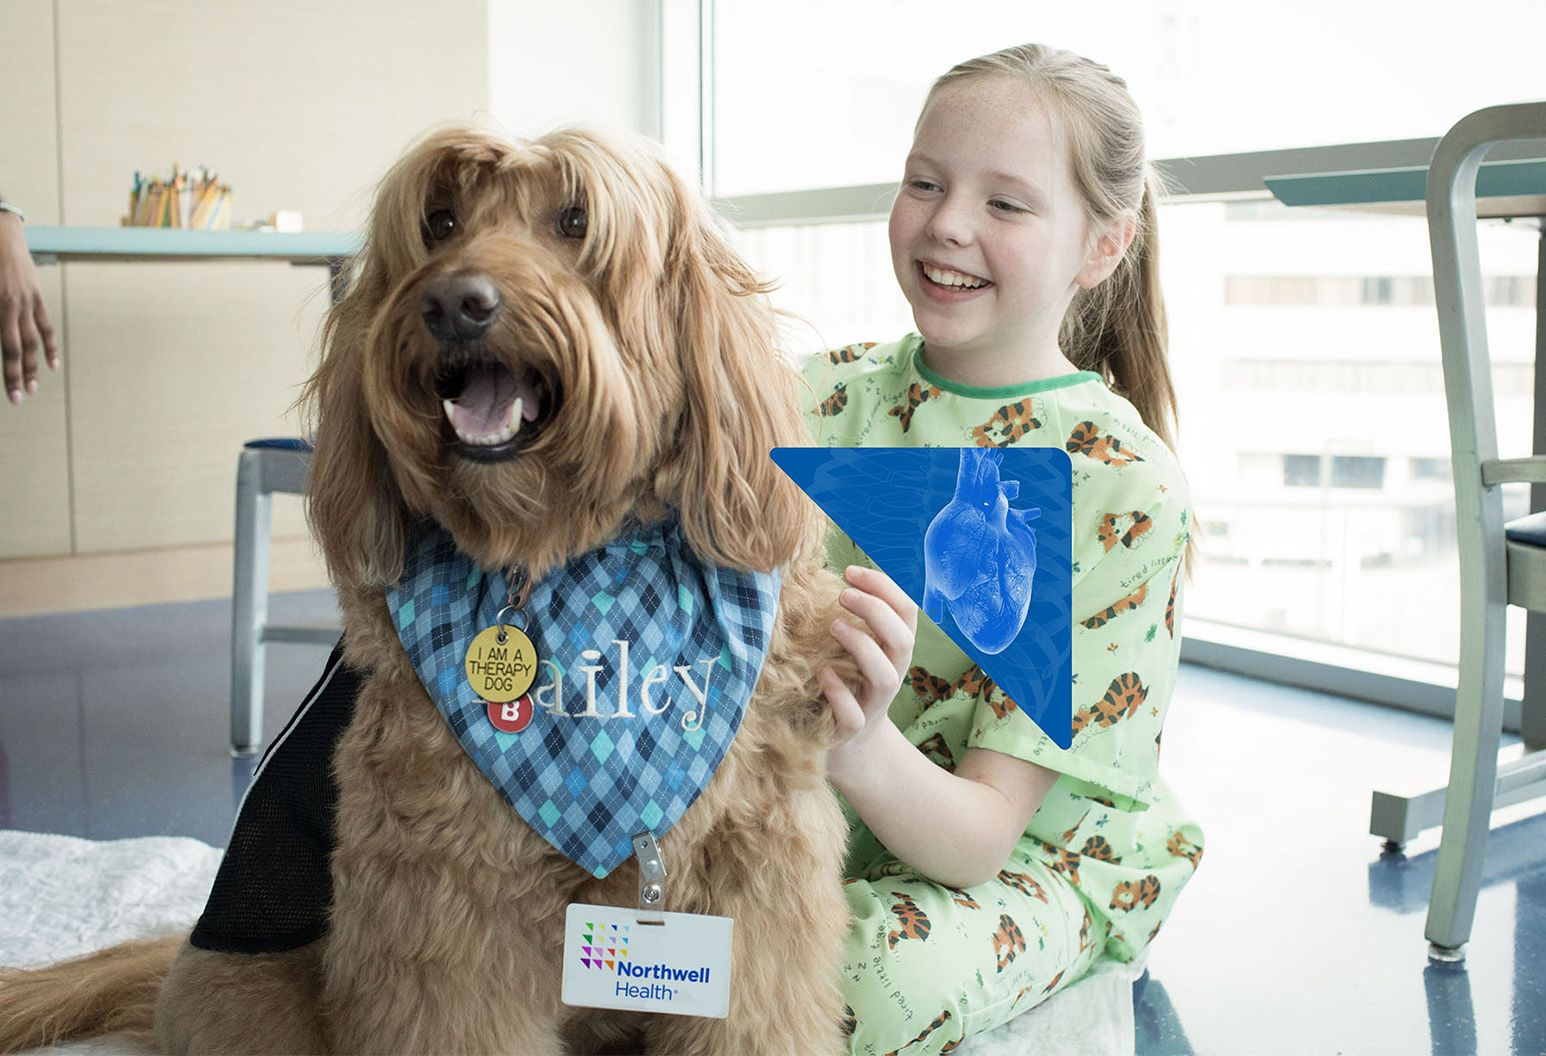 Young girl in hospital with pet therapy dog.